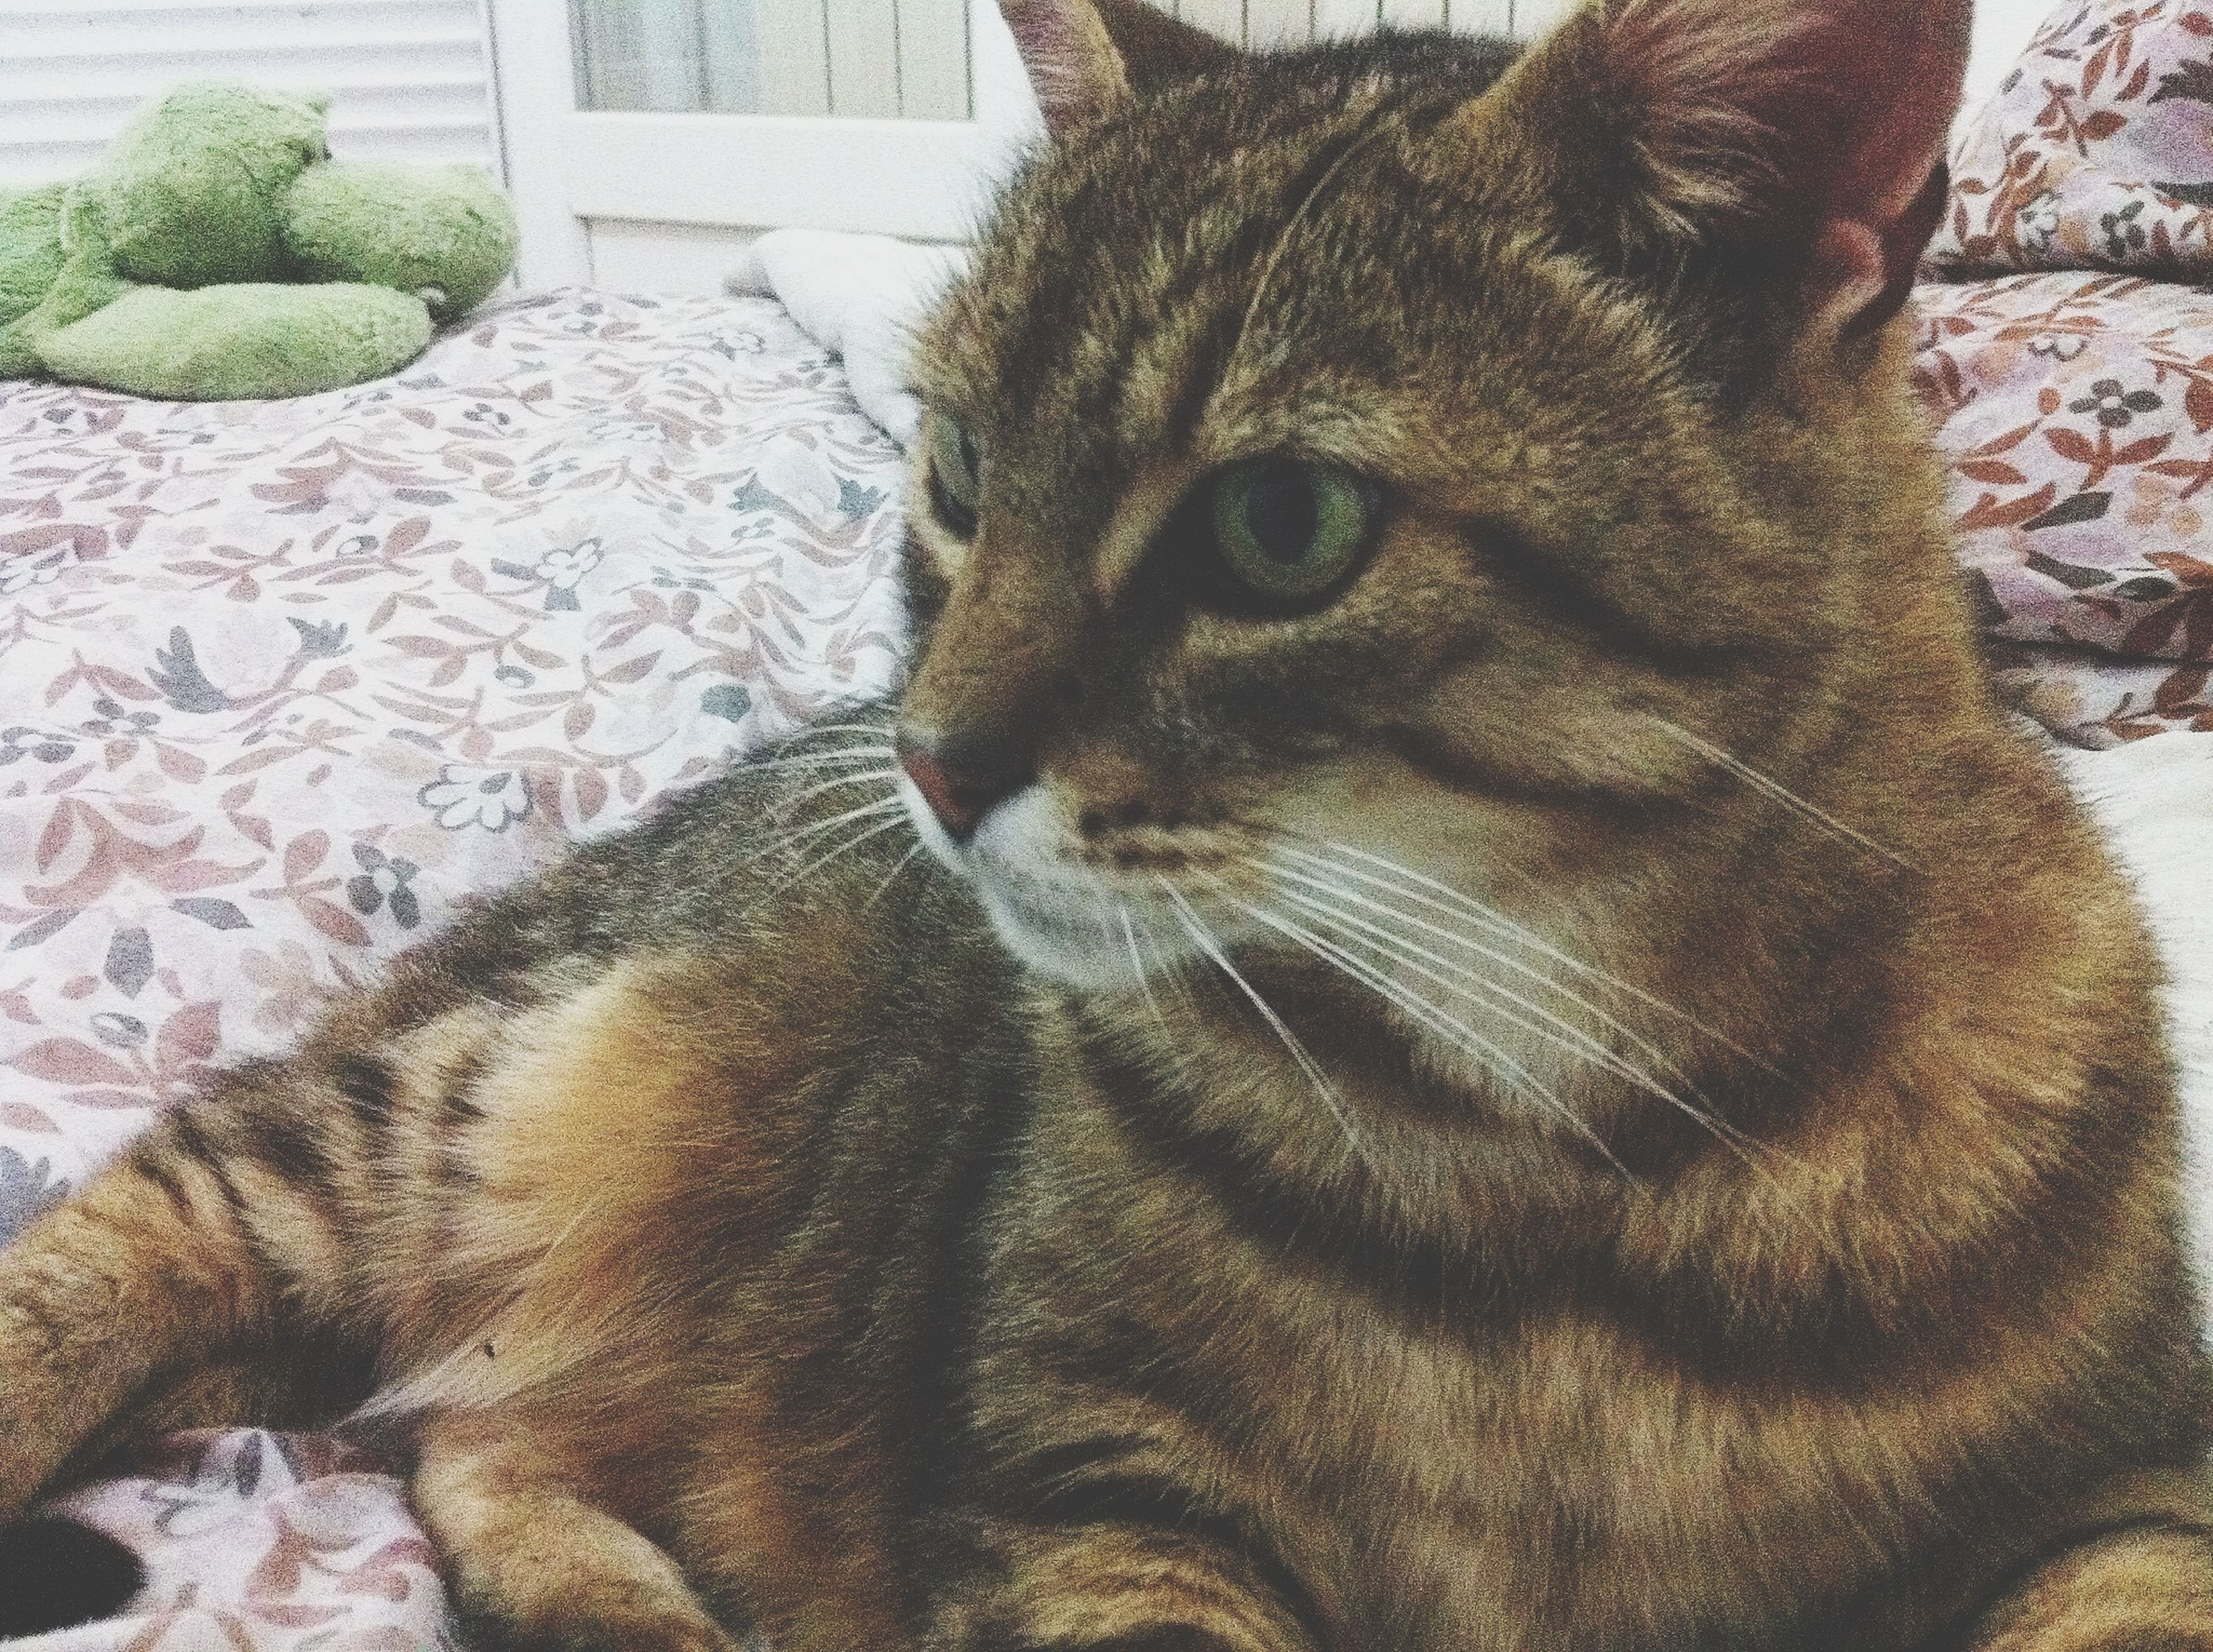 animal themes, one animal, mammal, domestic animals, feline, domestic cat, whisker, pets, close-up, animal head, cat, relaxation, looking away, resting, zoology, lying down, vertebrate, no people, animal, animal body part